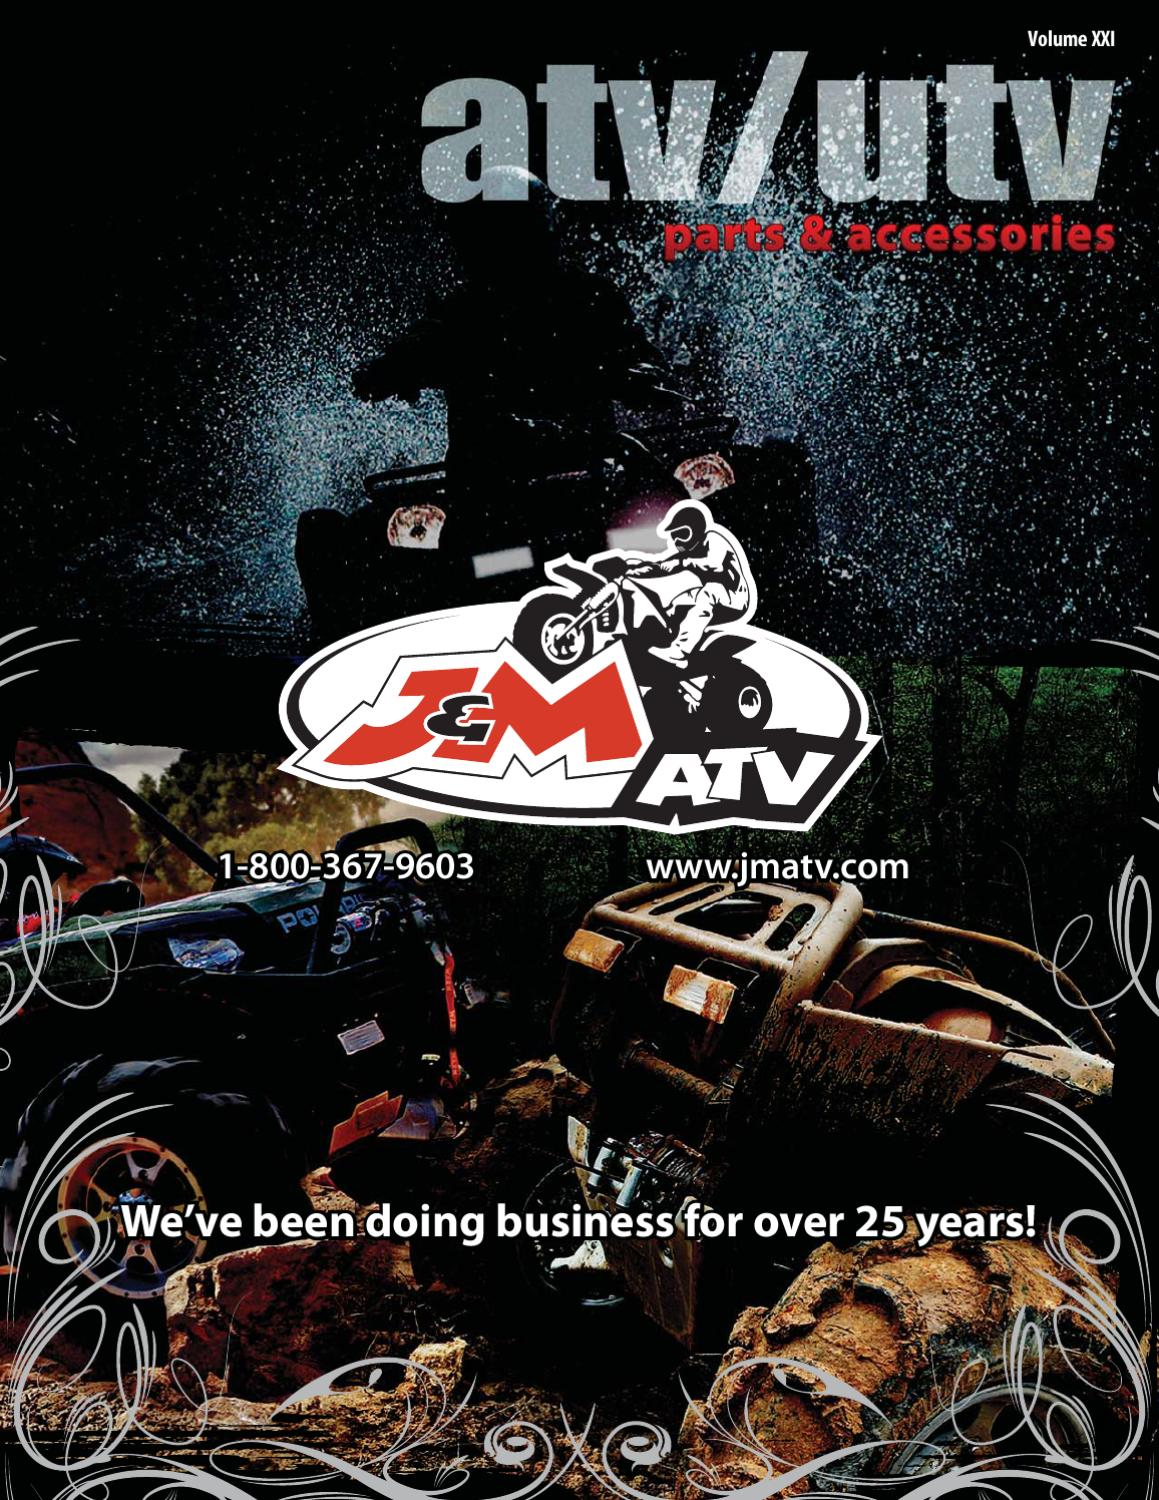 Jm Atv Supply Utv Parts Catalog Version 21 By 1996 Polaris Magnum 425 4x4 Wiring Diagram Issuu